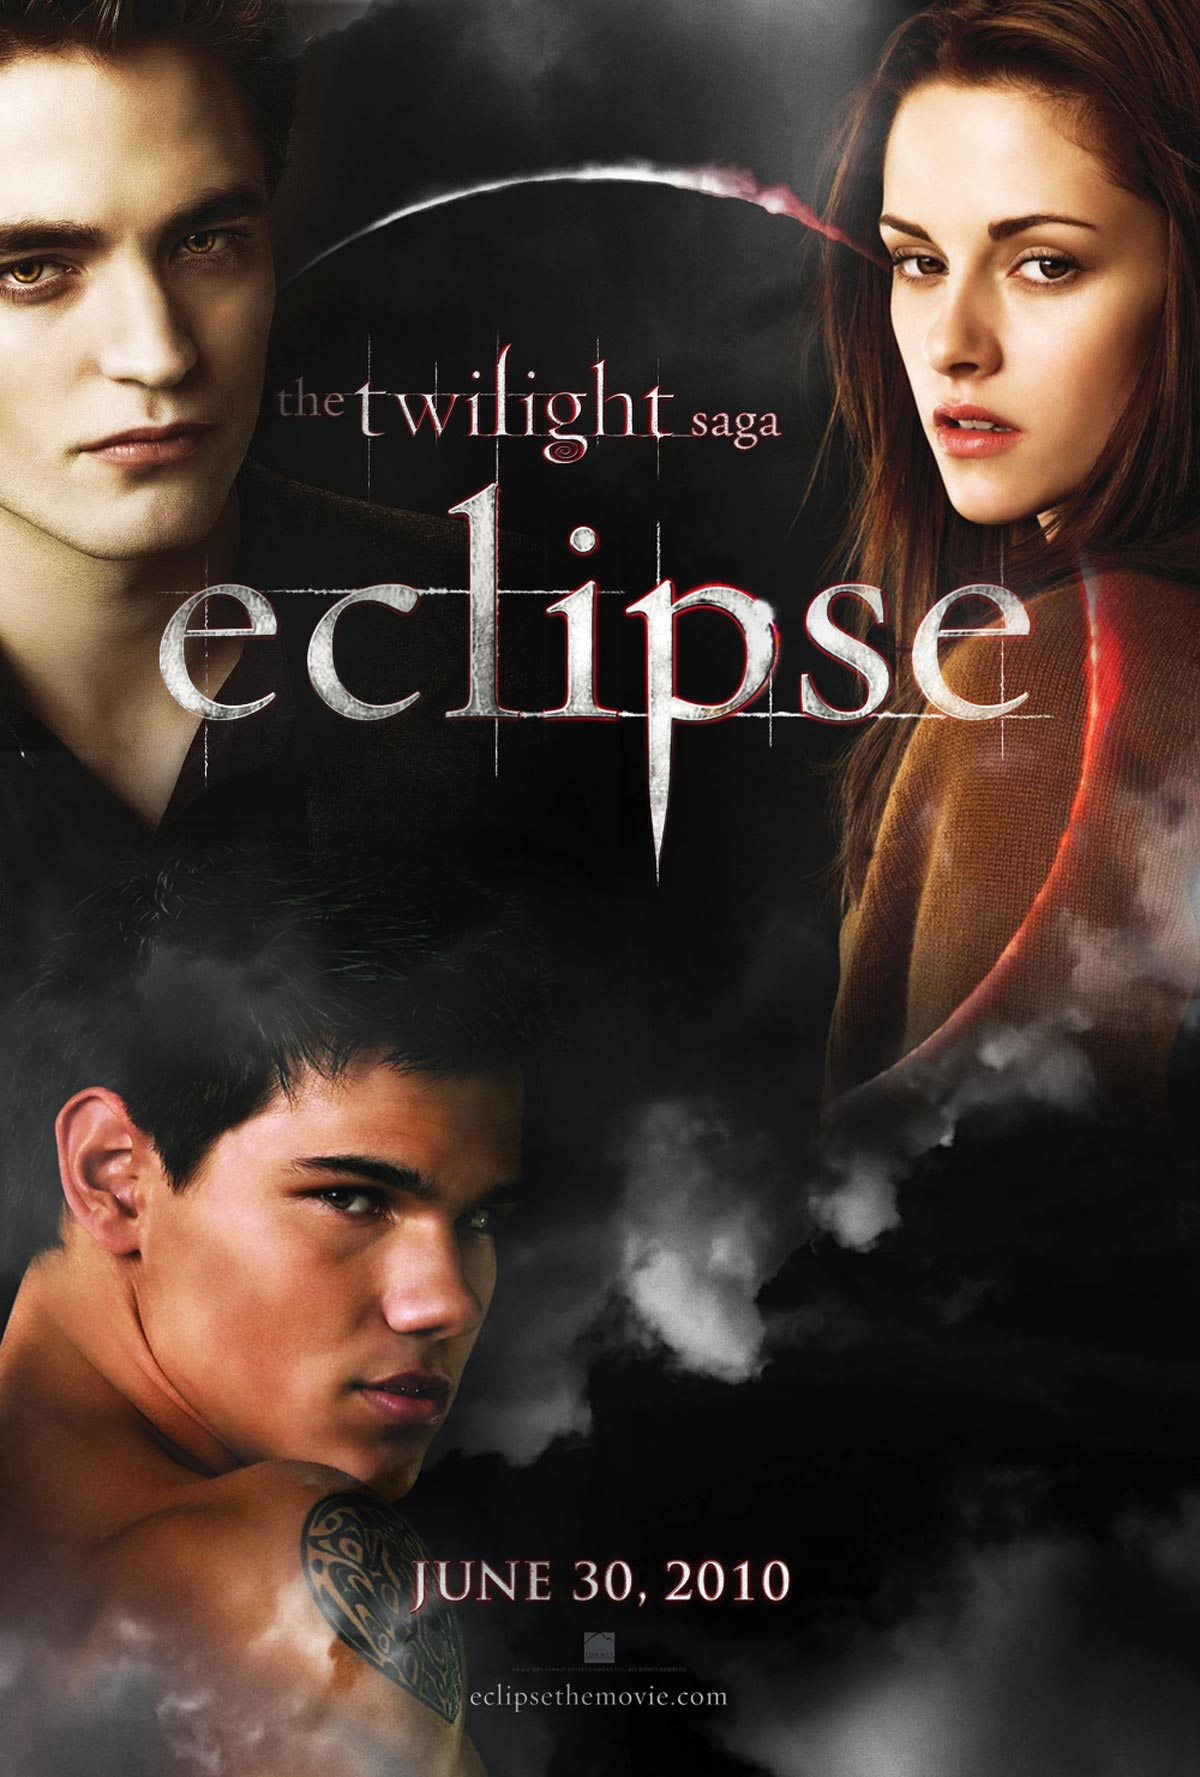 The Twilight Saga: Eclipse (2010) poster